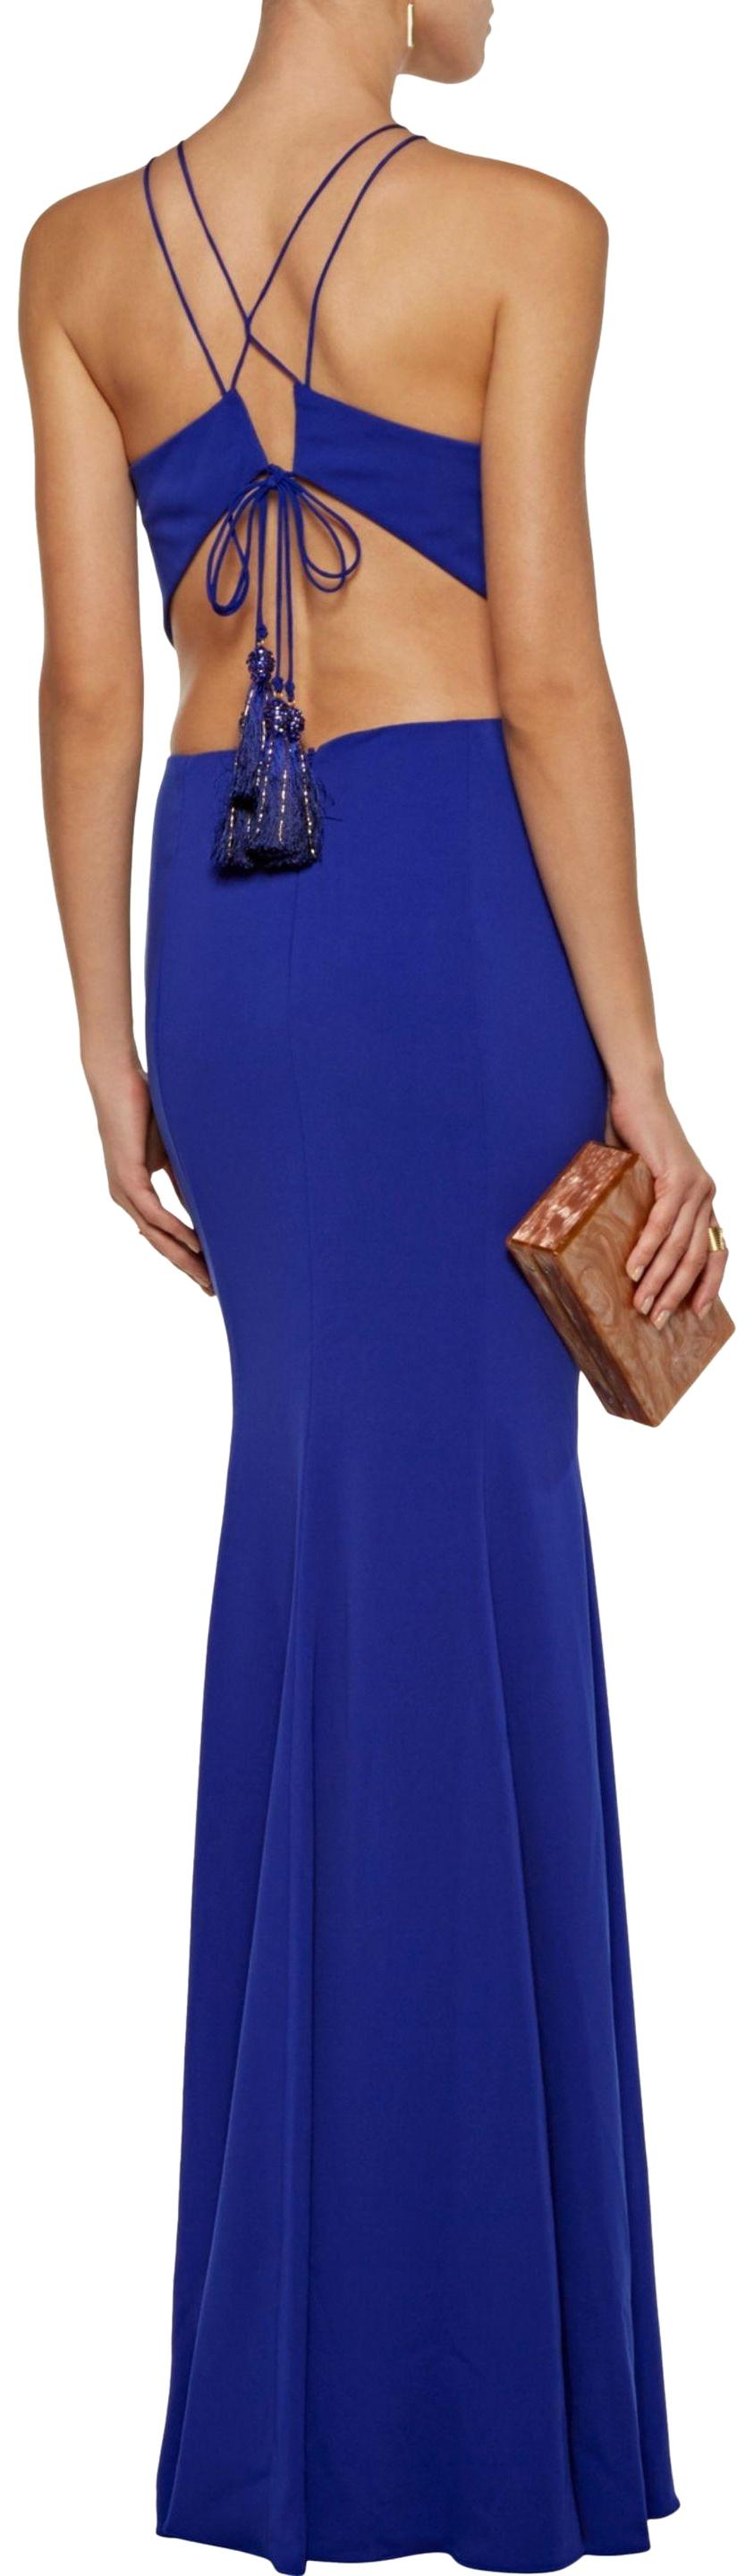 Marchesa Notte Woman Tasseled Embellished Stretch-cady Gown Royal Blue Size 8 Marchesa